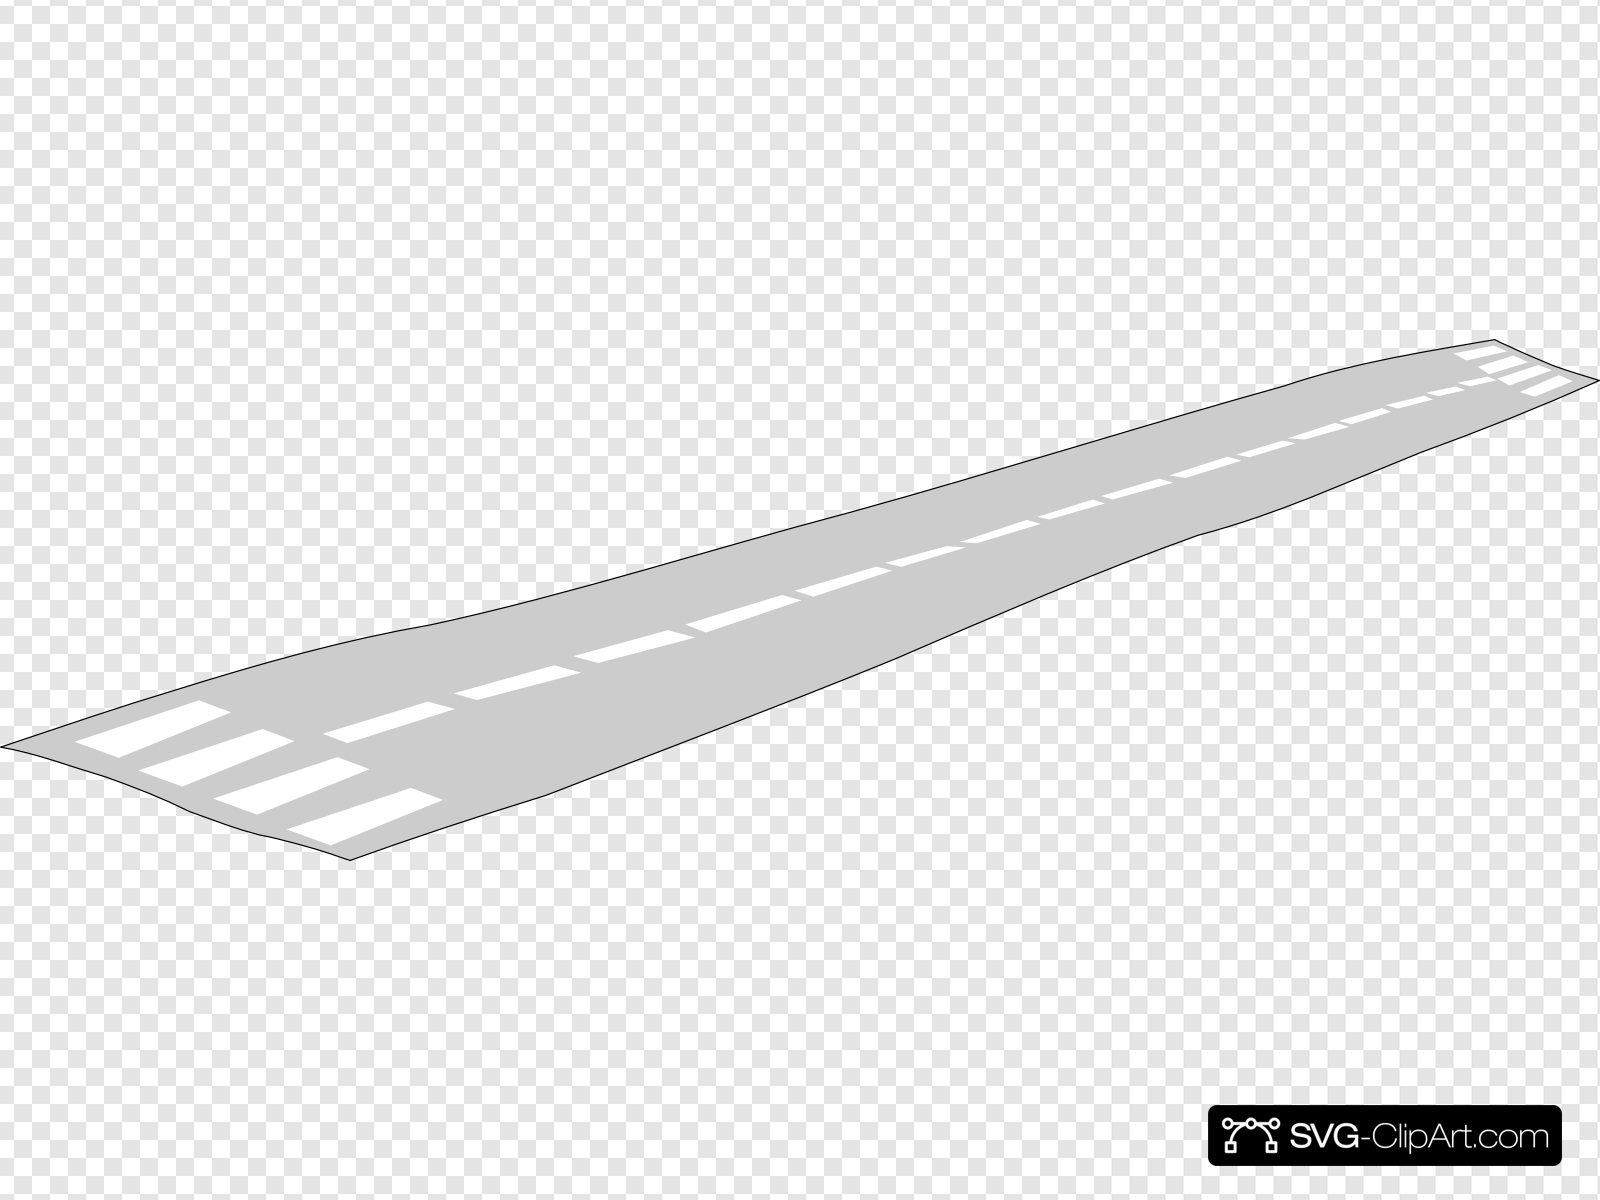 Airport Runway Clip art, Icon and SVG.